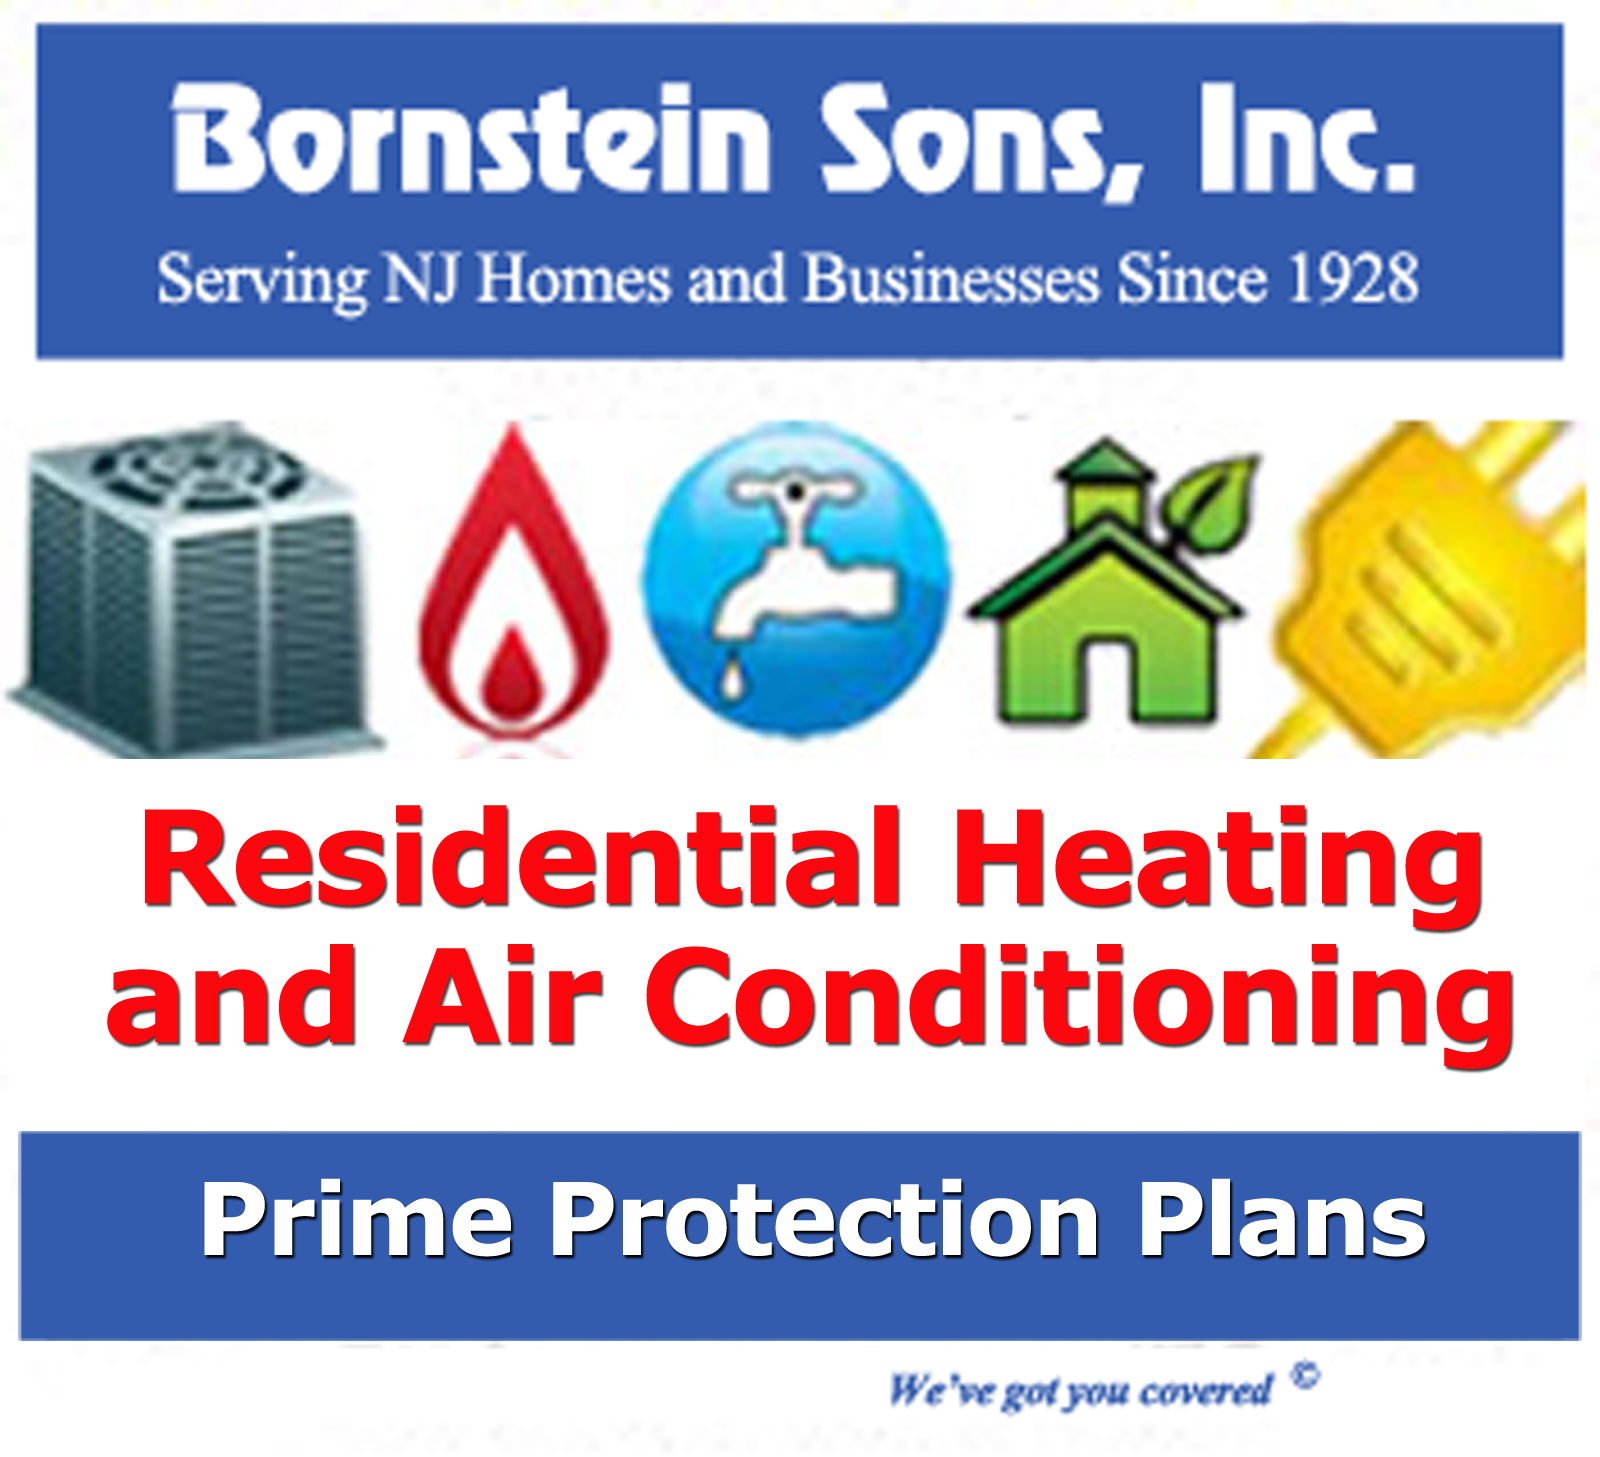 Save on heating and air conditioning repairs with Bornstein Sons Prime Protection Plan